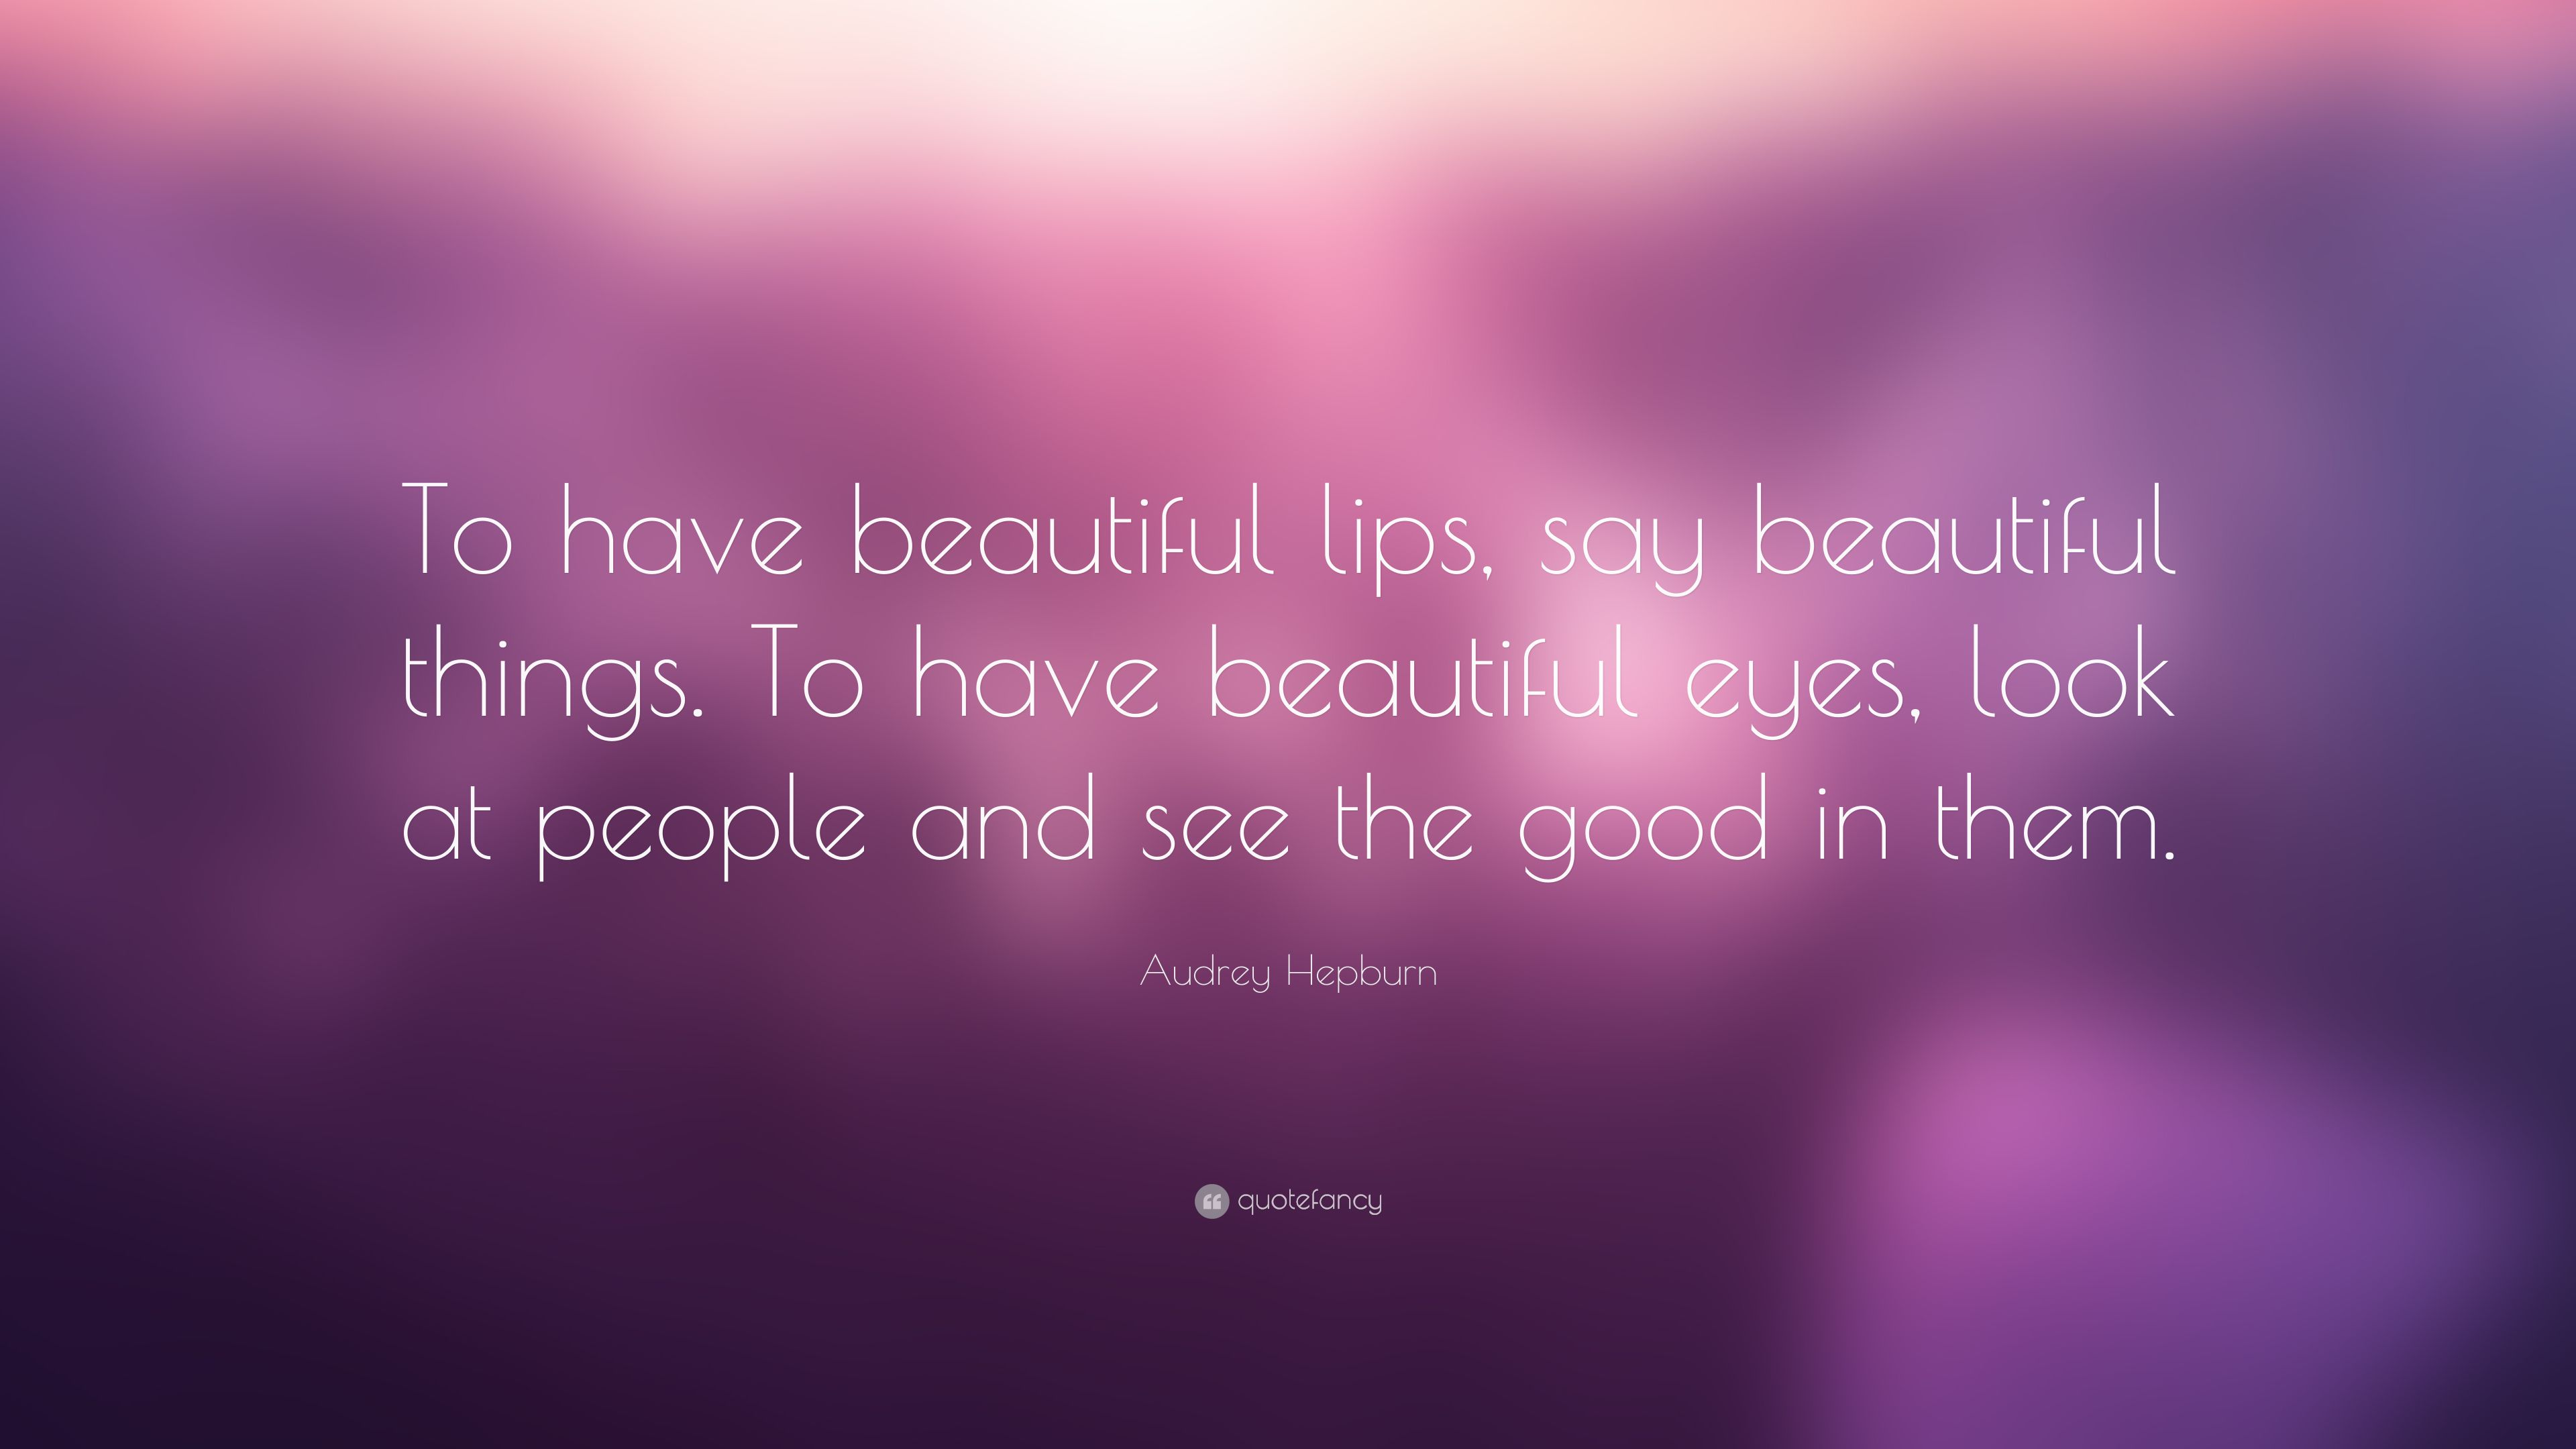 Audrey Hepburn Quote To Have Beautiful Lips Say Beautiful Things